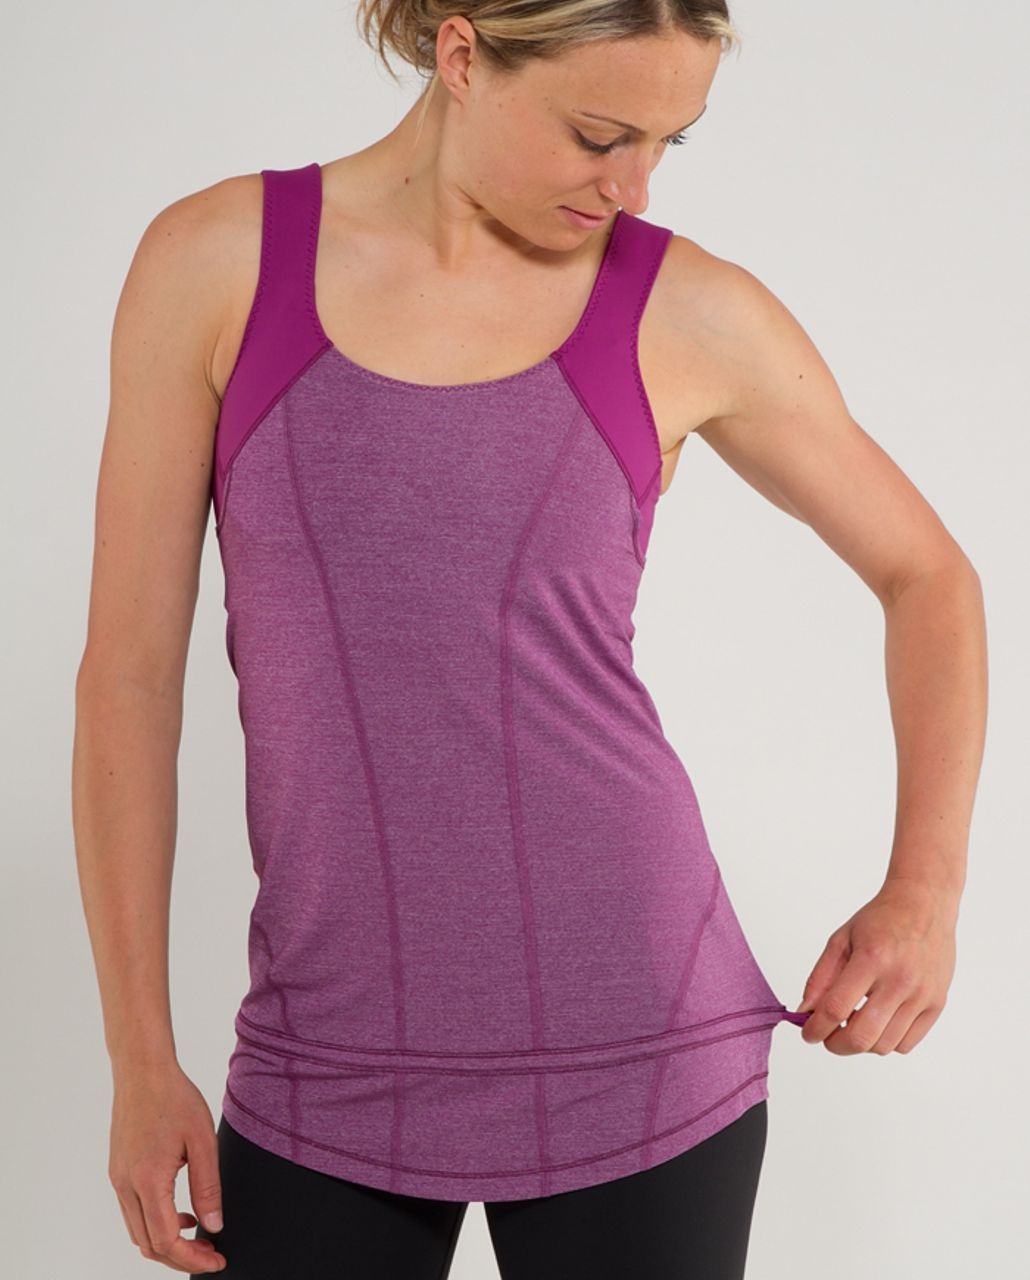 Lululemon Run:  For Your Life Tank - Heathered Dew Berry /  Dew Berry